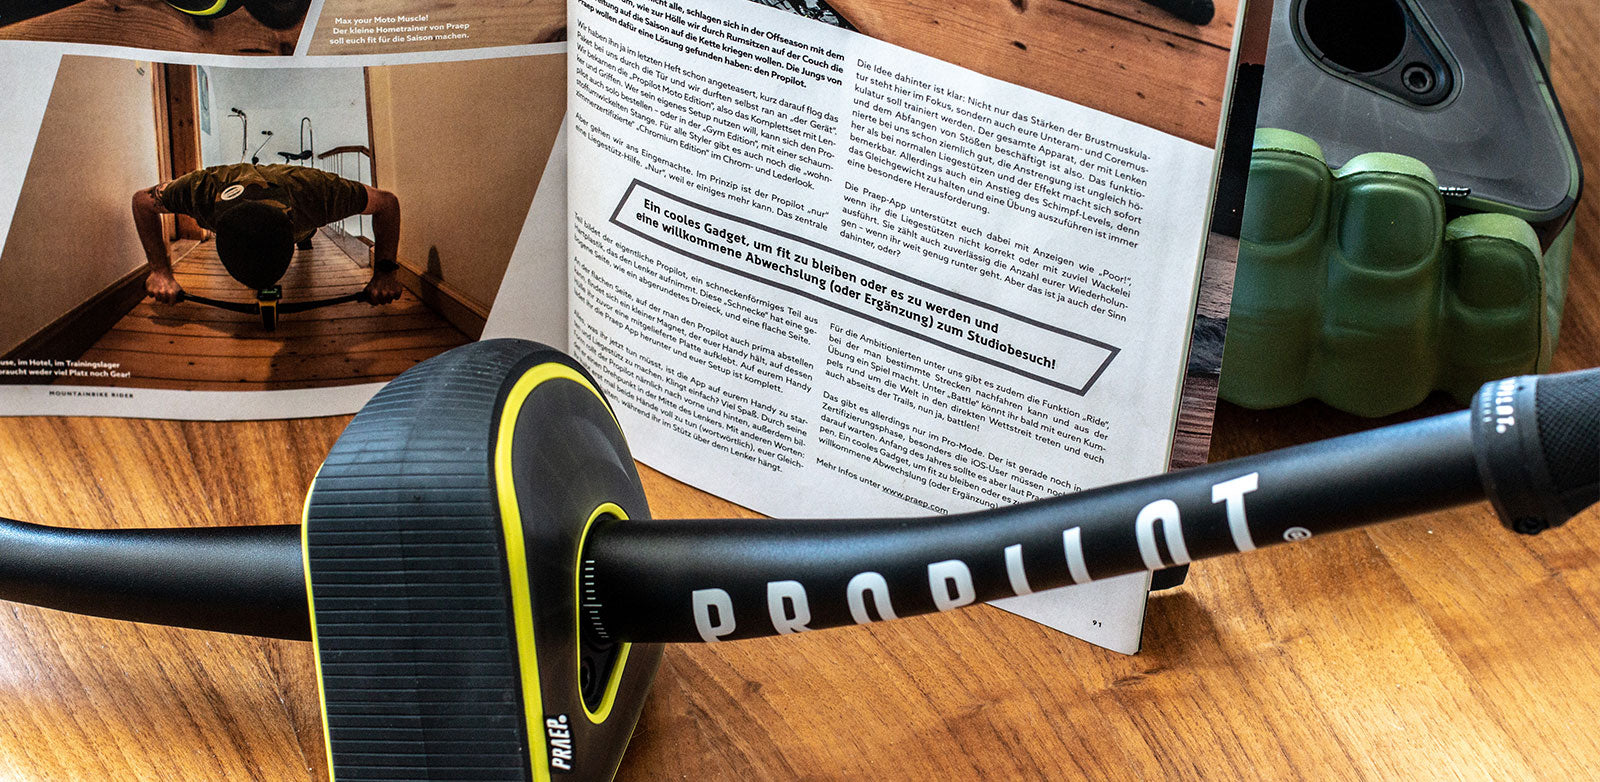 Praep ProPilot Review Test Mountainbike Rider Magazin 3 19